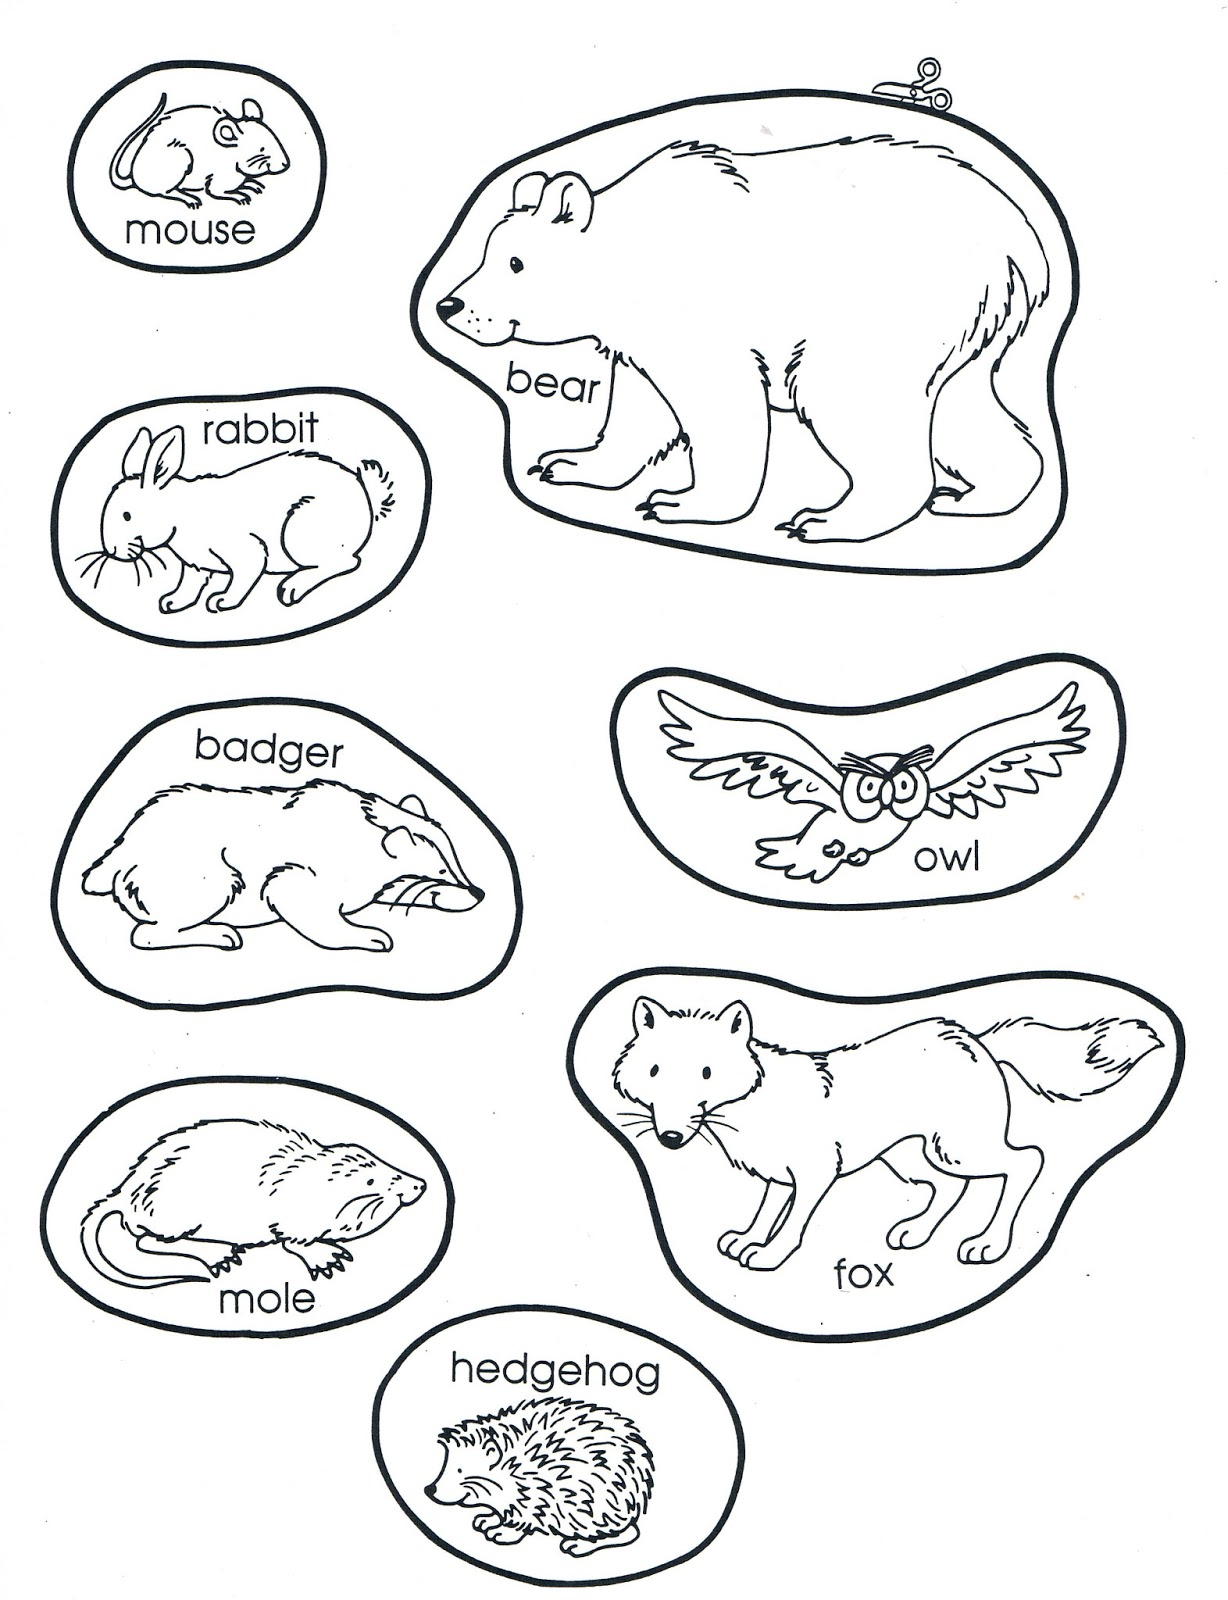 ... mitten animals jan brett activities 675 x 900 616 kb jpeg mitten by